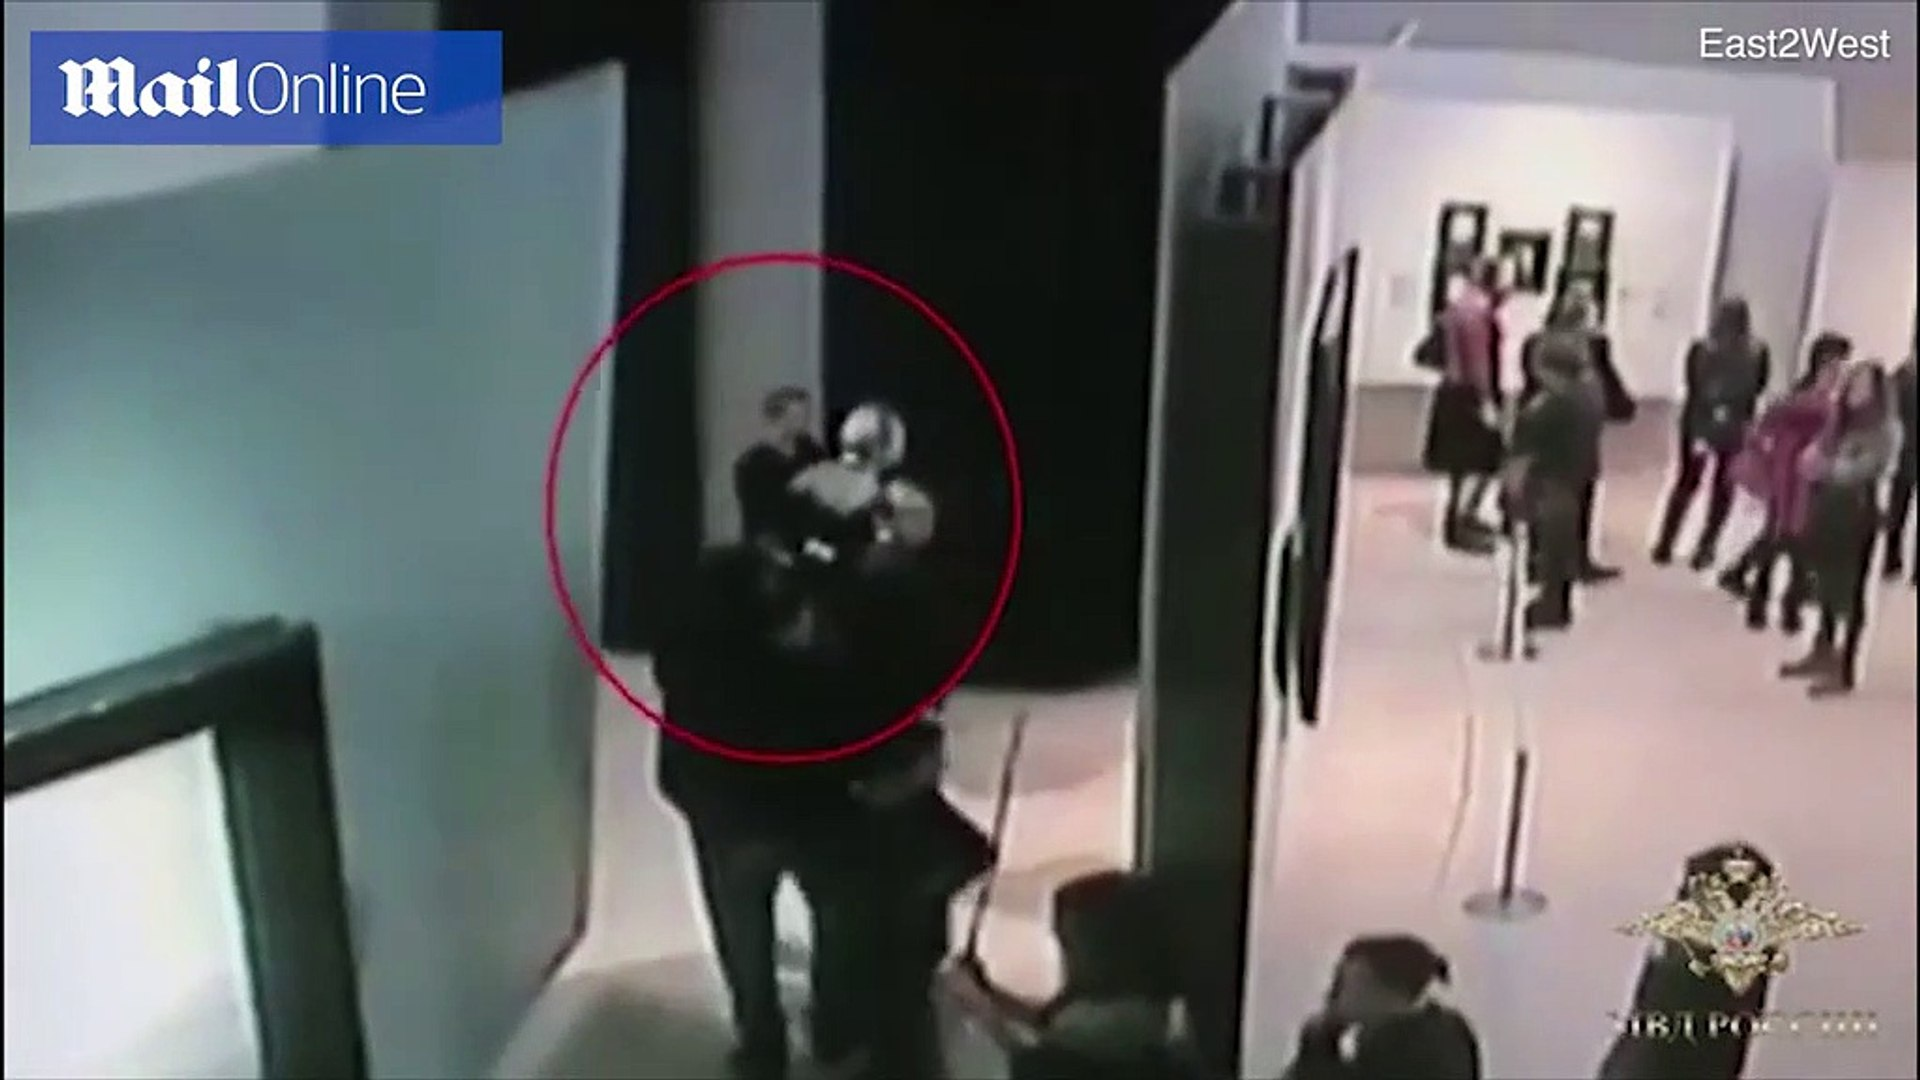 CCTV shows a man stealing a painting in front of staff and visitors